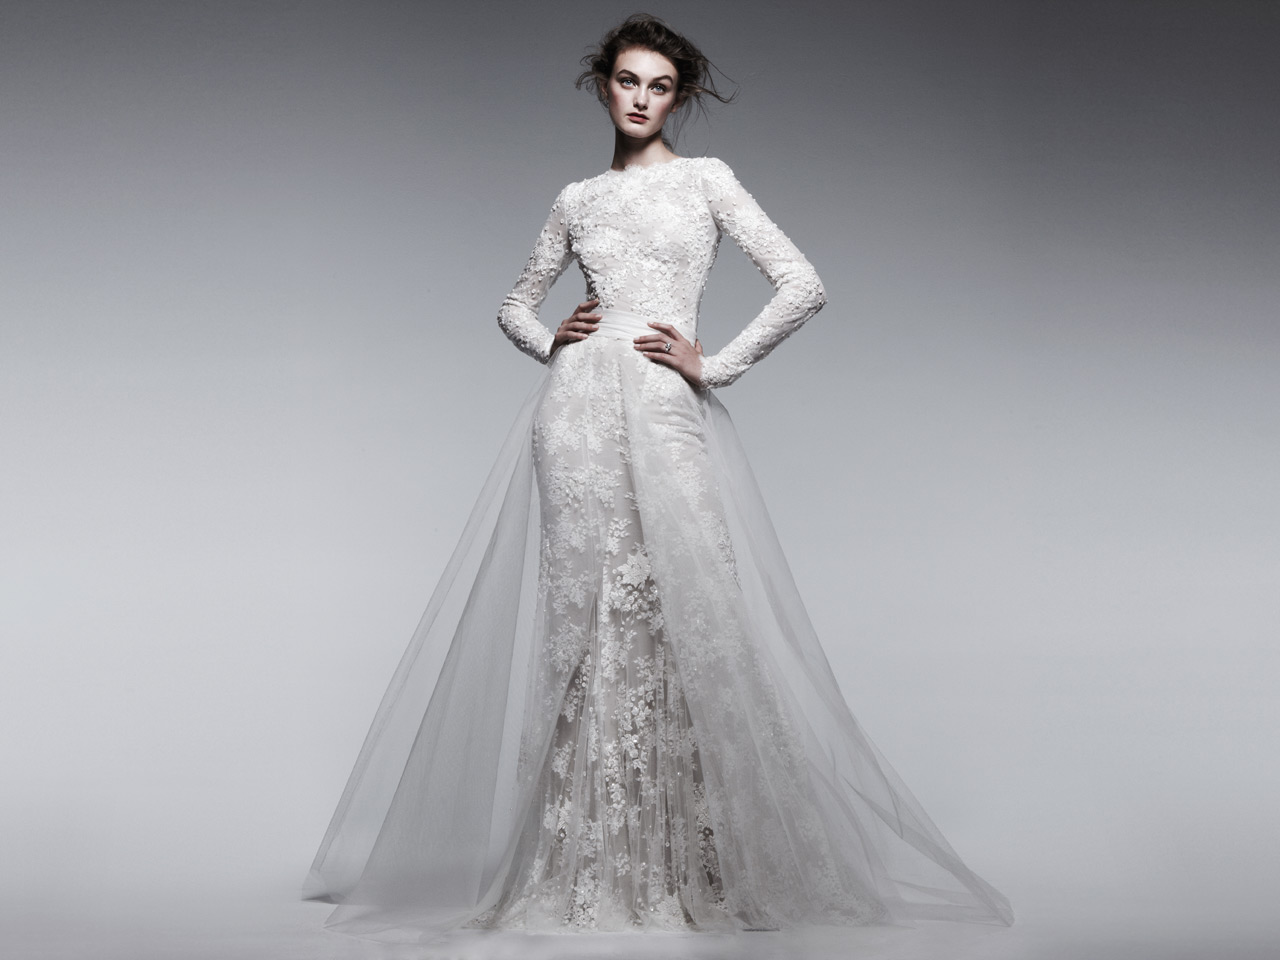 Monique lhuillier for Monique lhuillier wedding dress